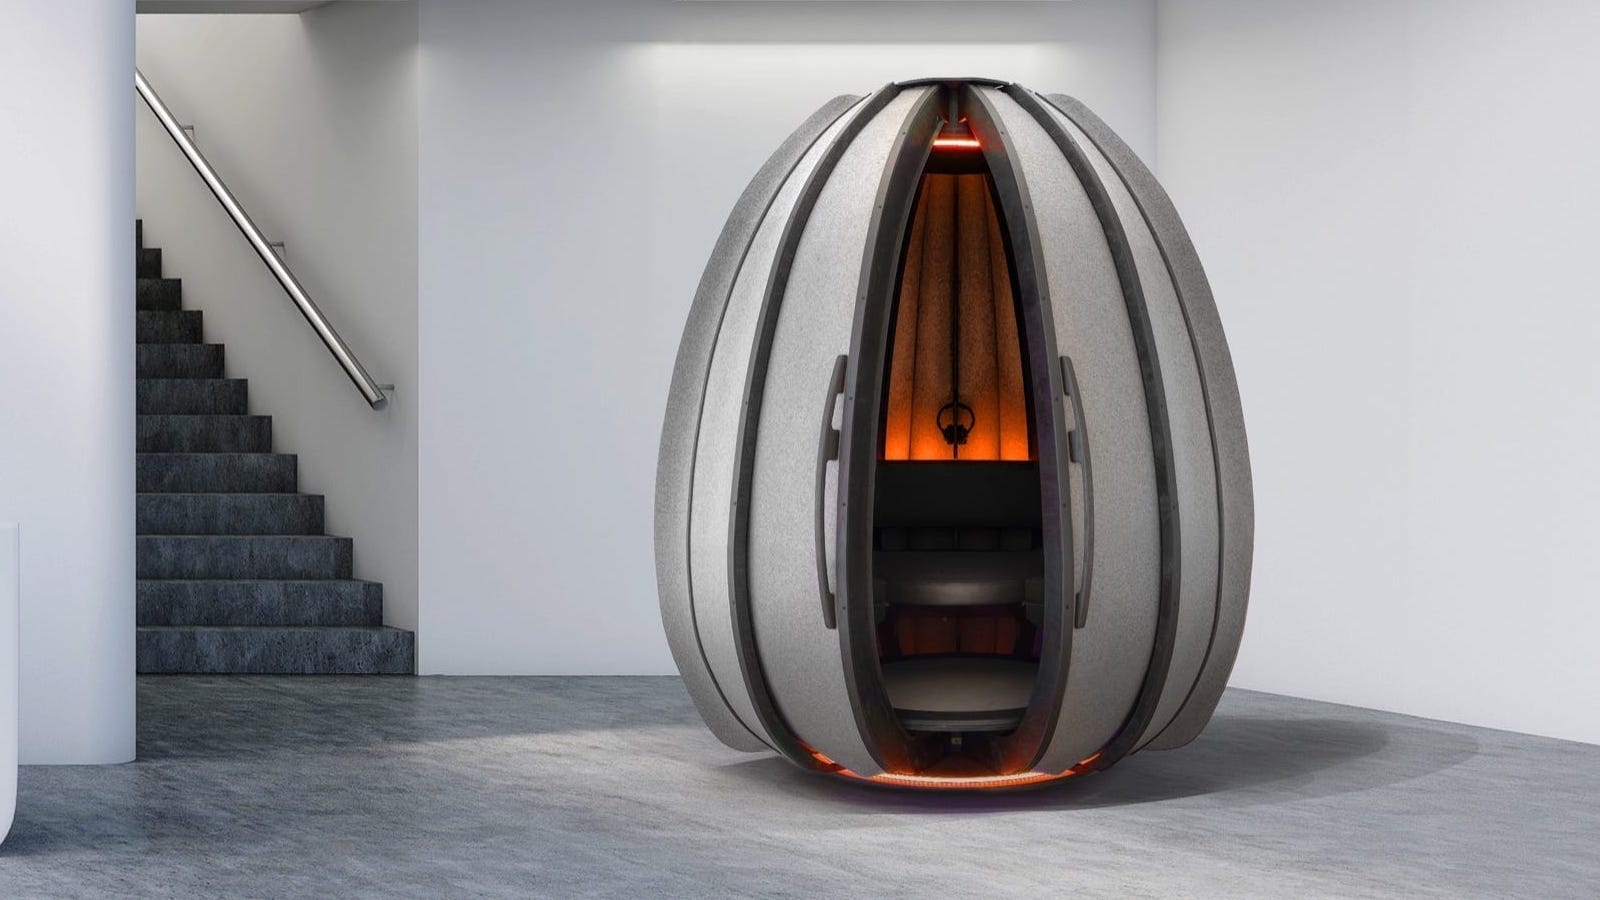 OpenSeed Meditation Pod creative escape gives you a calm space at work